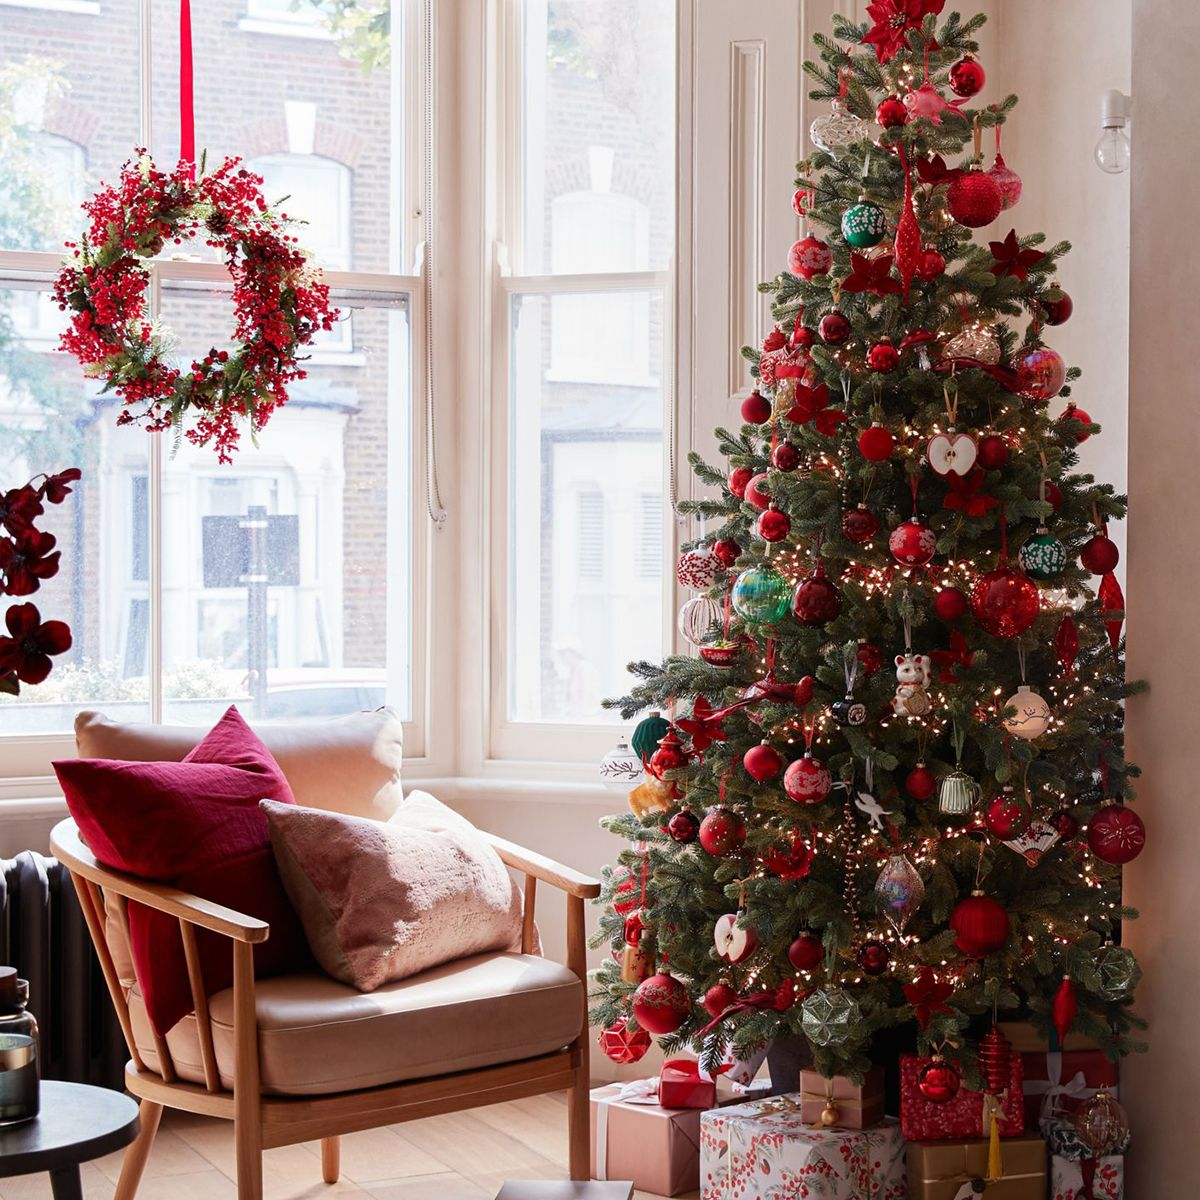 Five steps to a perfectly decorated Christmas tree